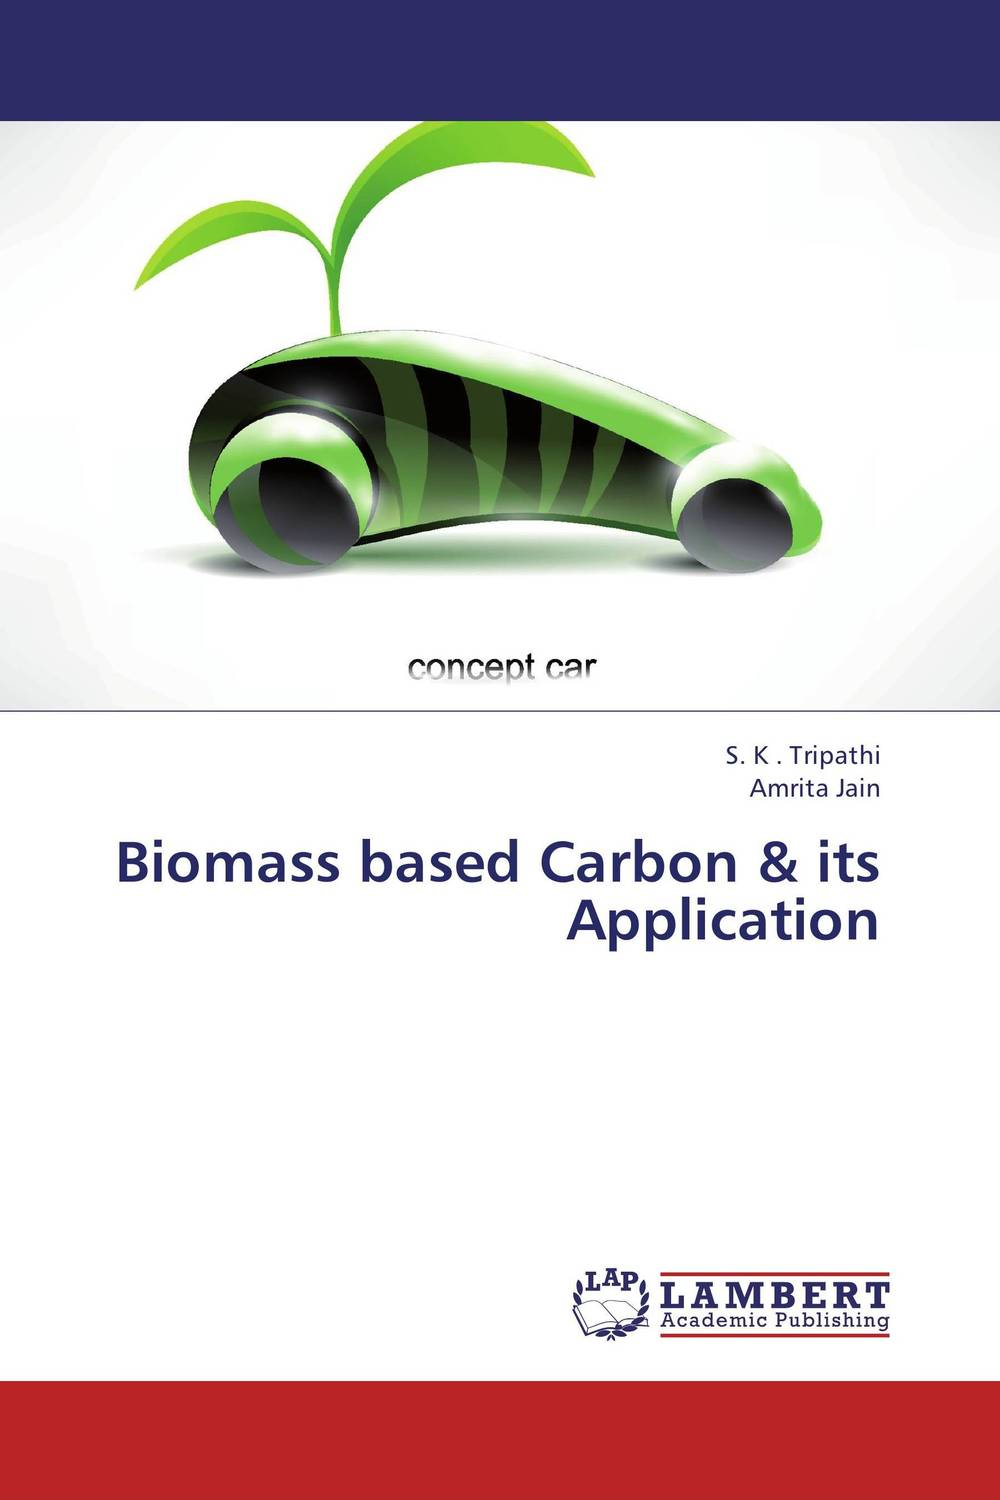 Biomass based Carbon & its Application thermo operated water valves can be used in food processing equipments biomass boilers and hydraulic systems